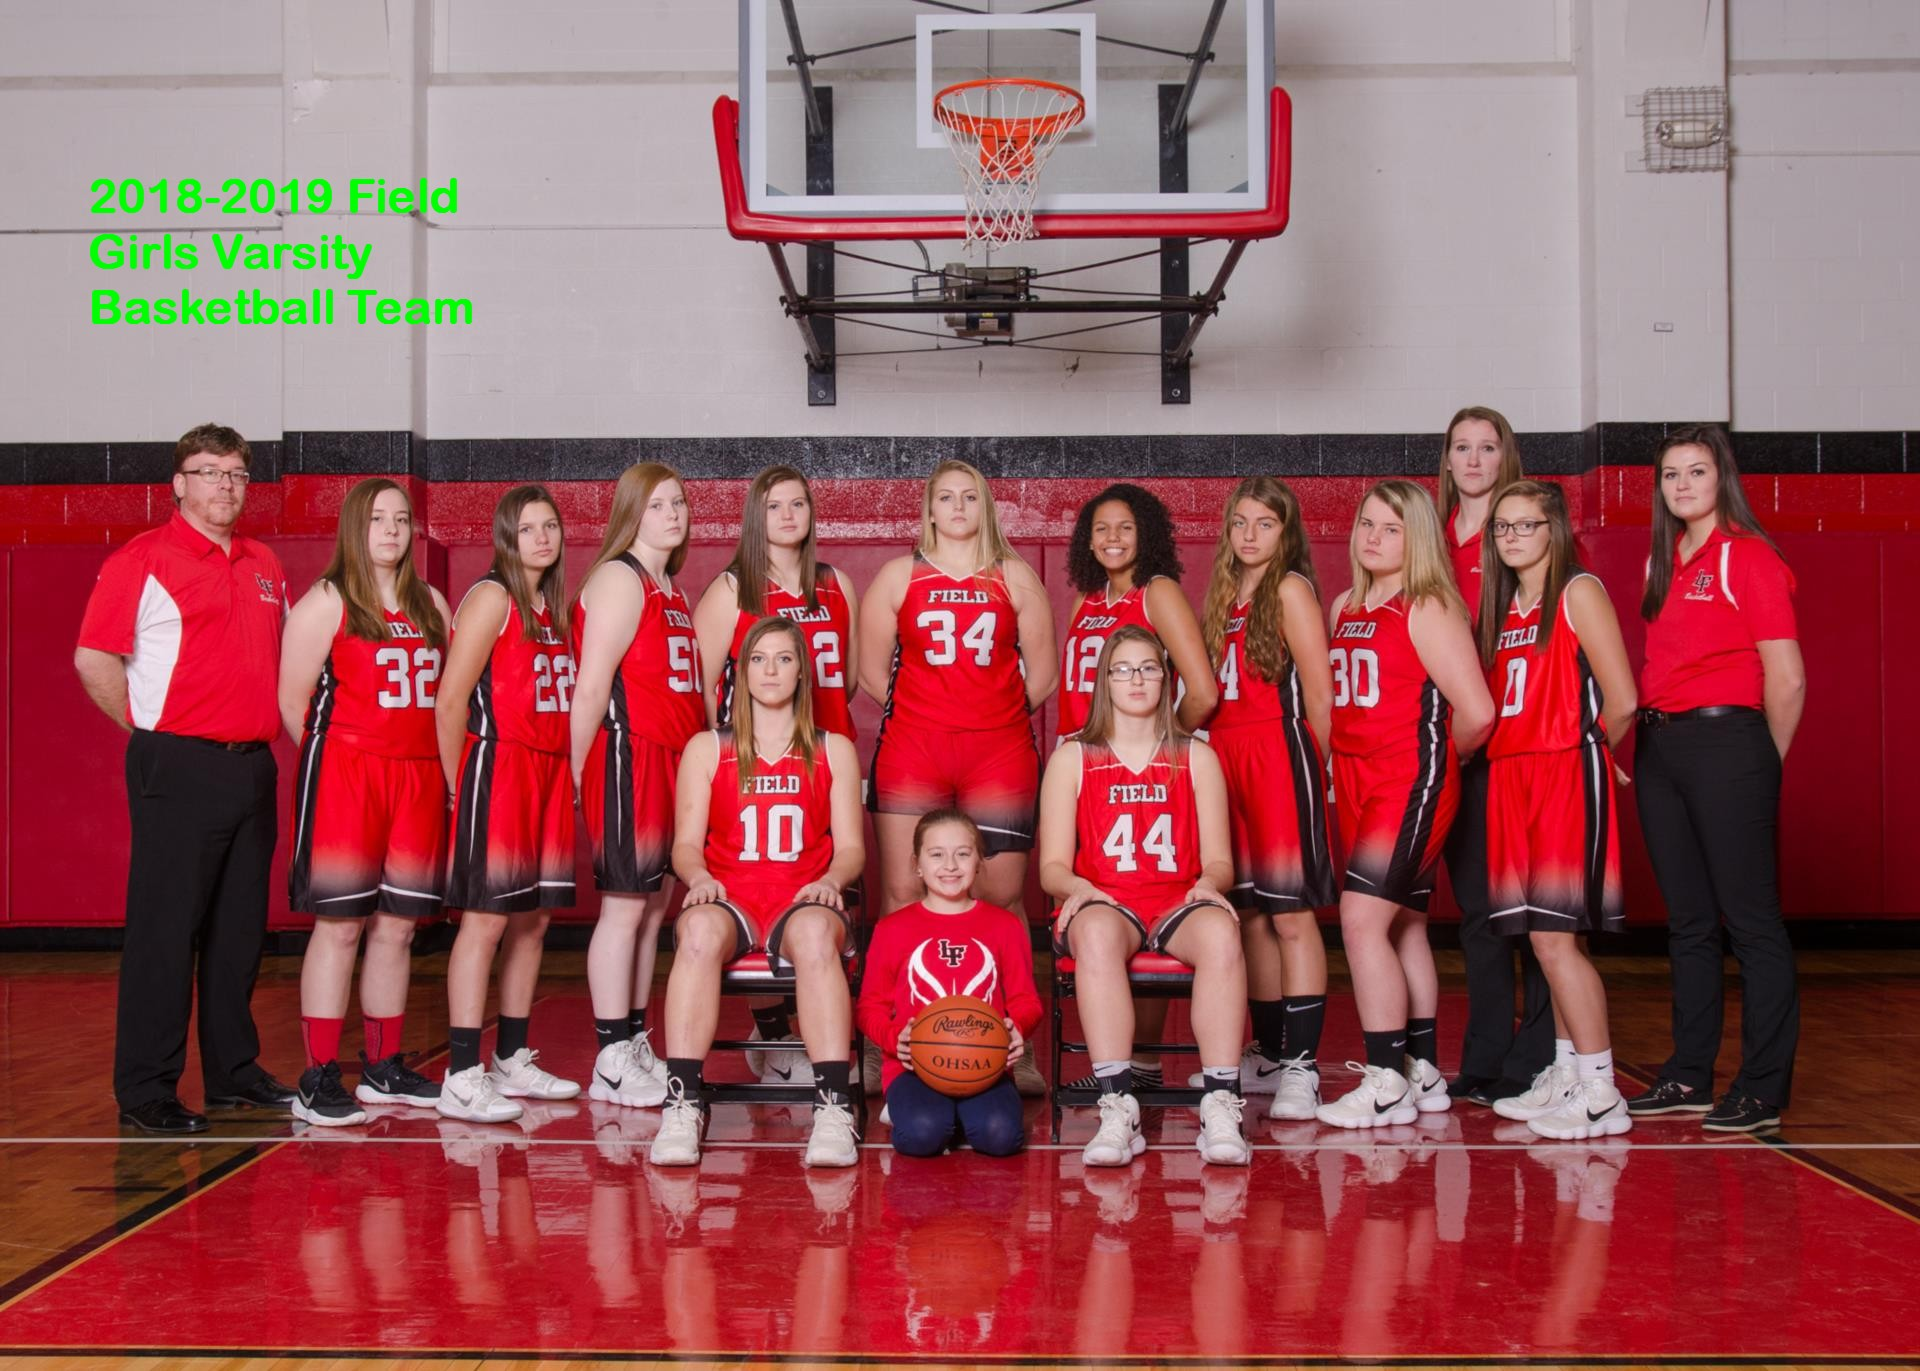 2018 2019 Field Girls Varsity Basketball team.jpgwith text